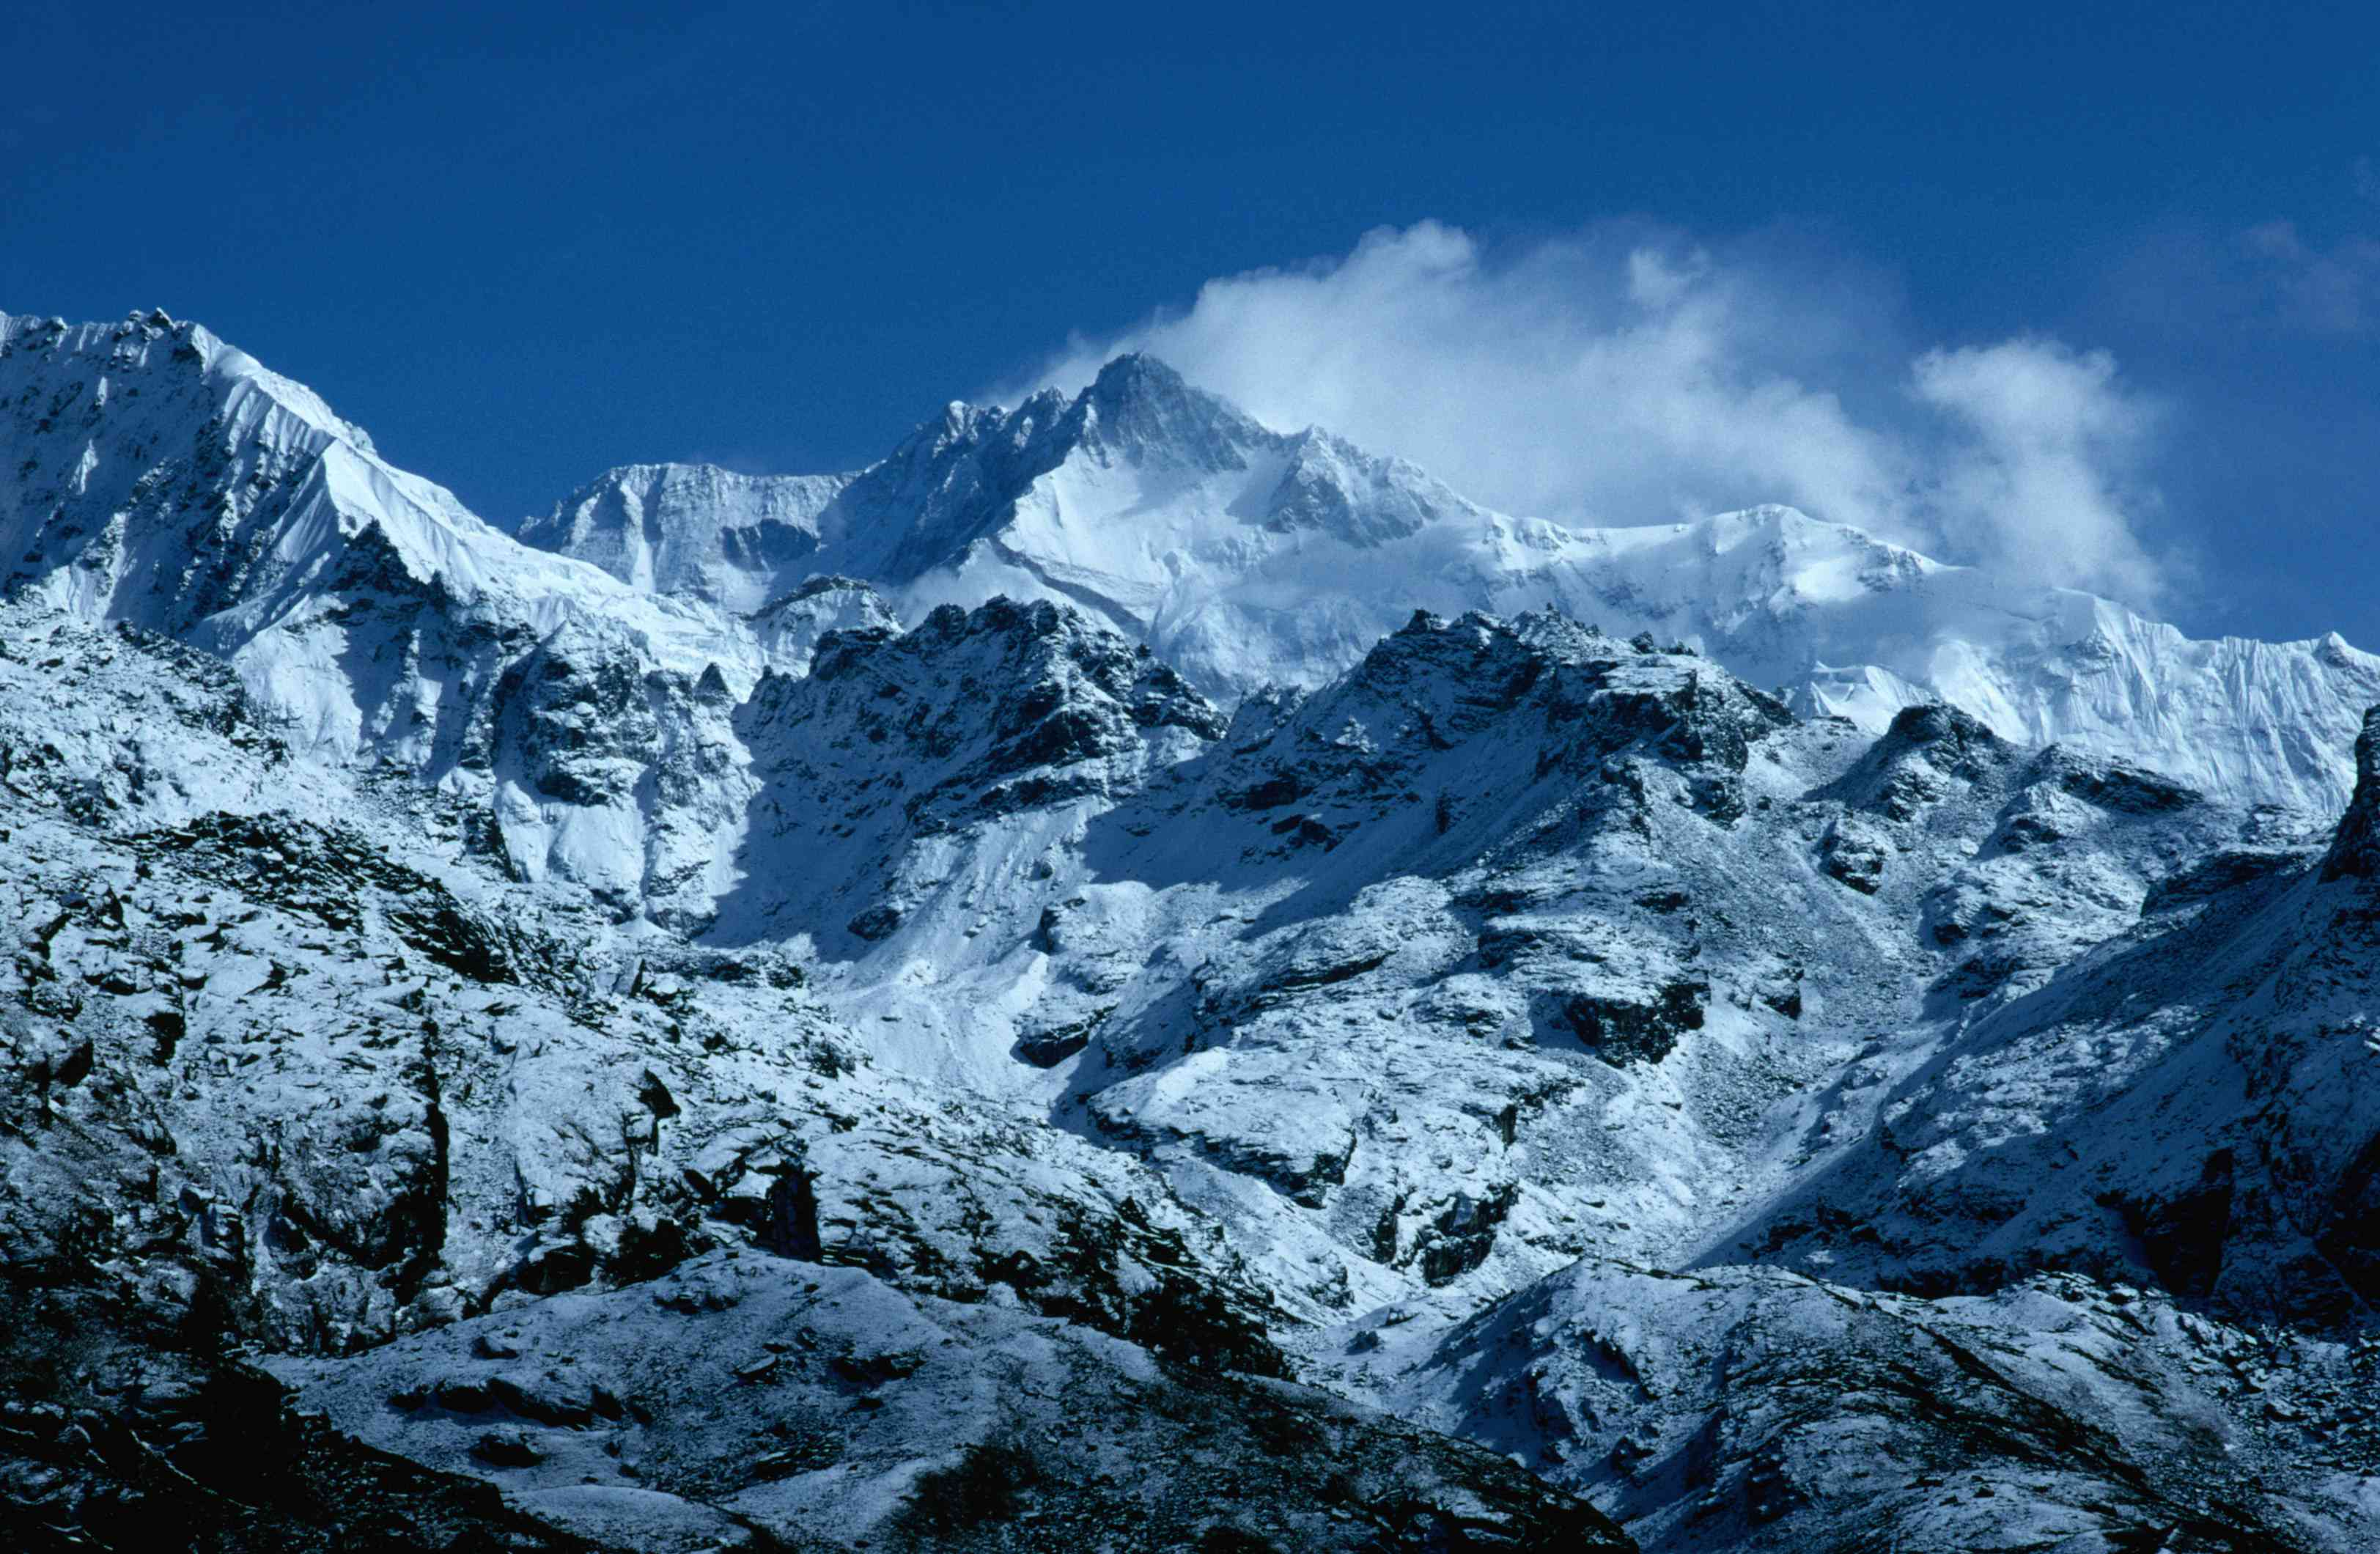 snow-capped mountains with clouds and blue sky